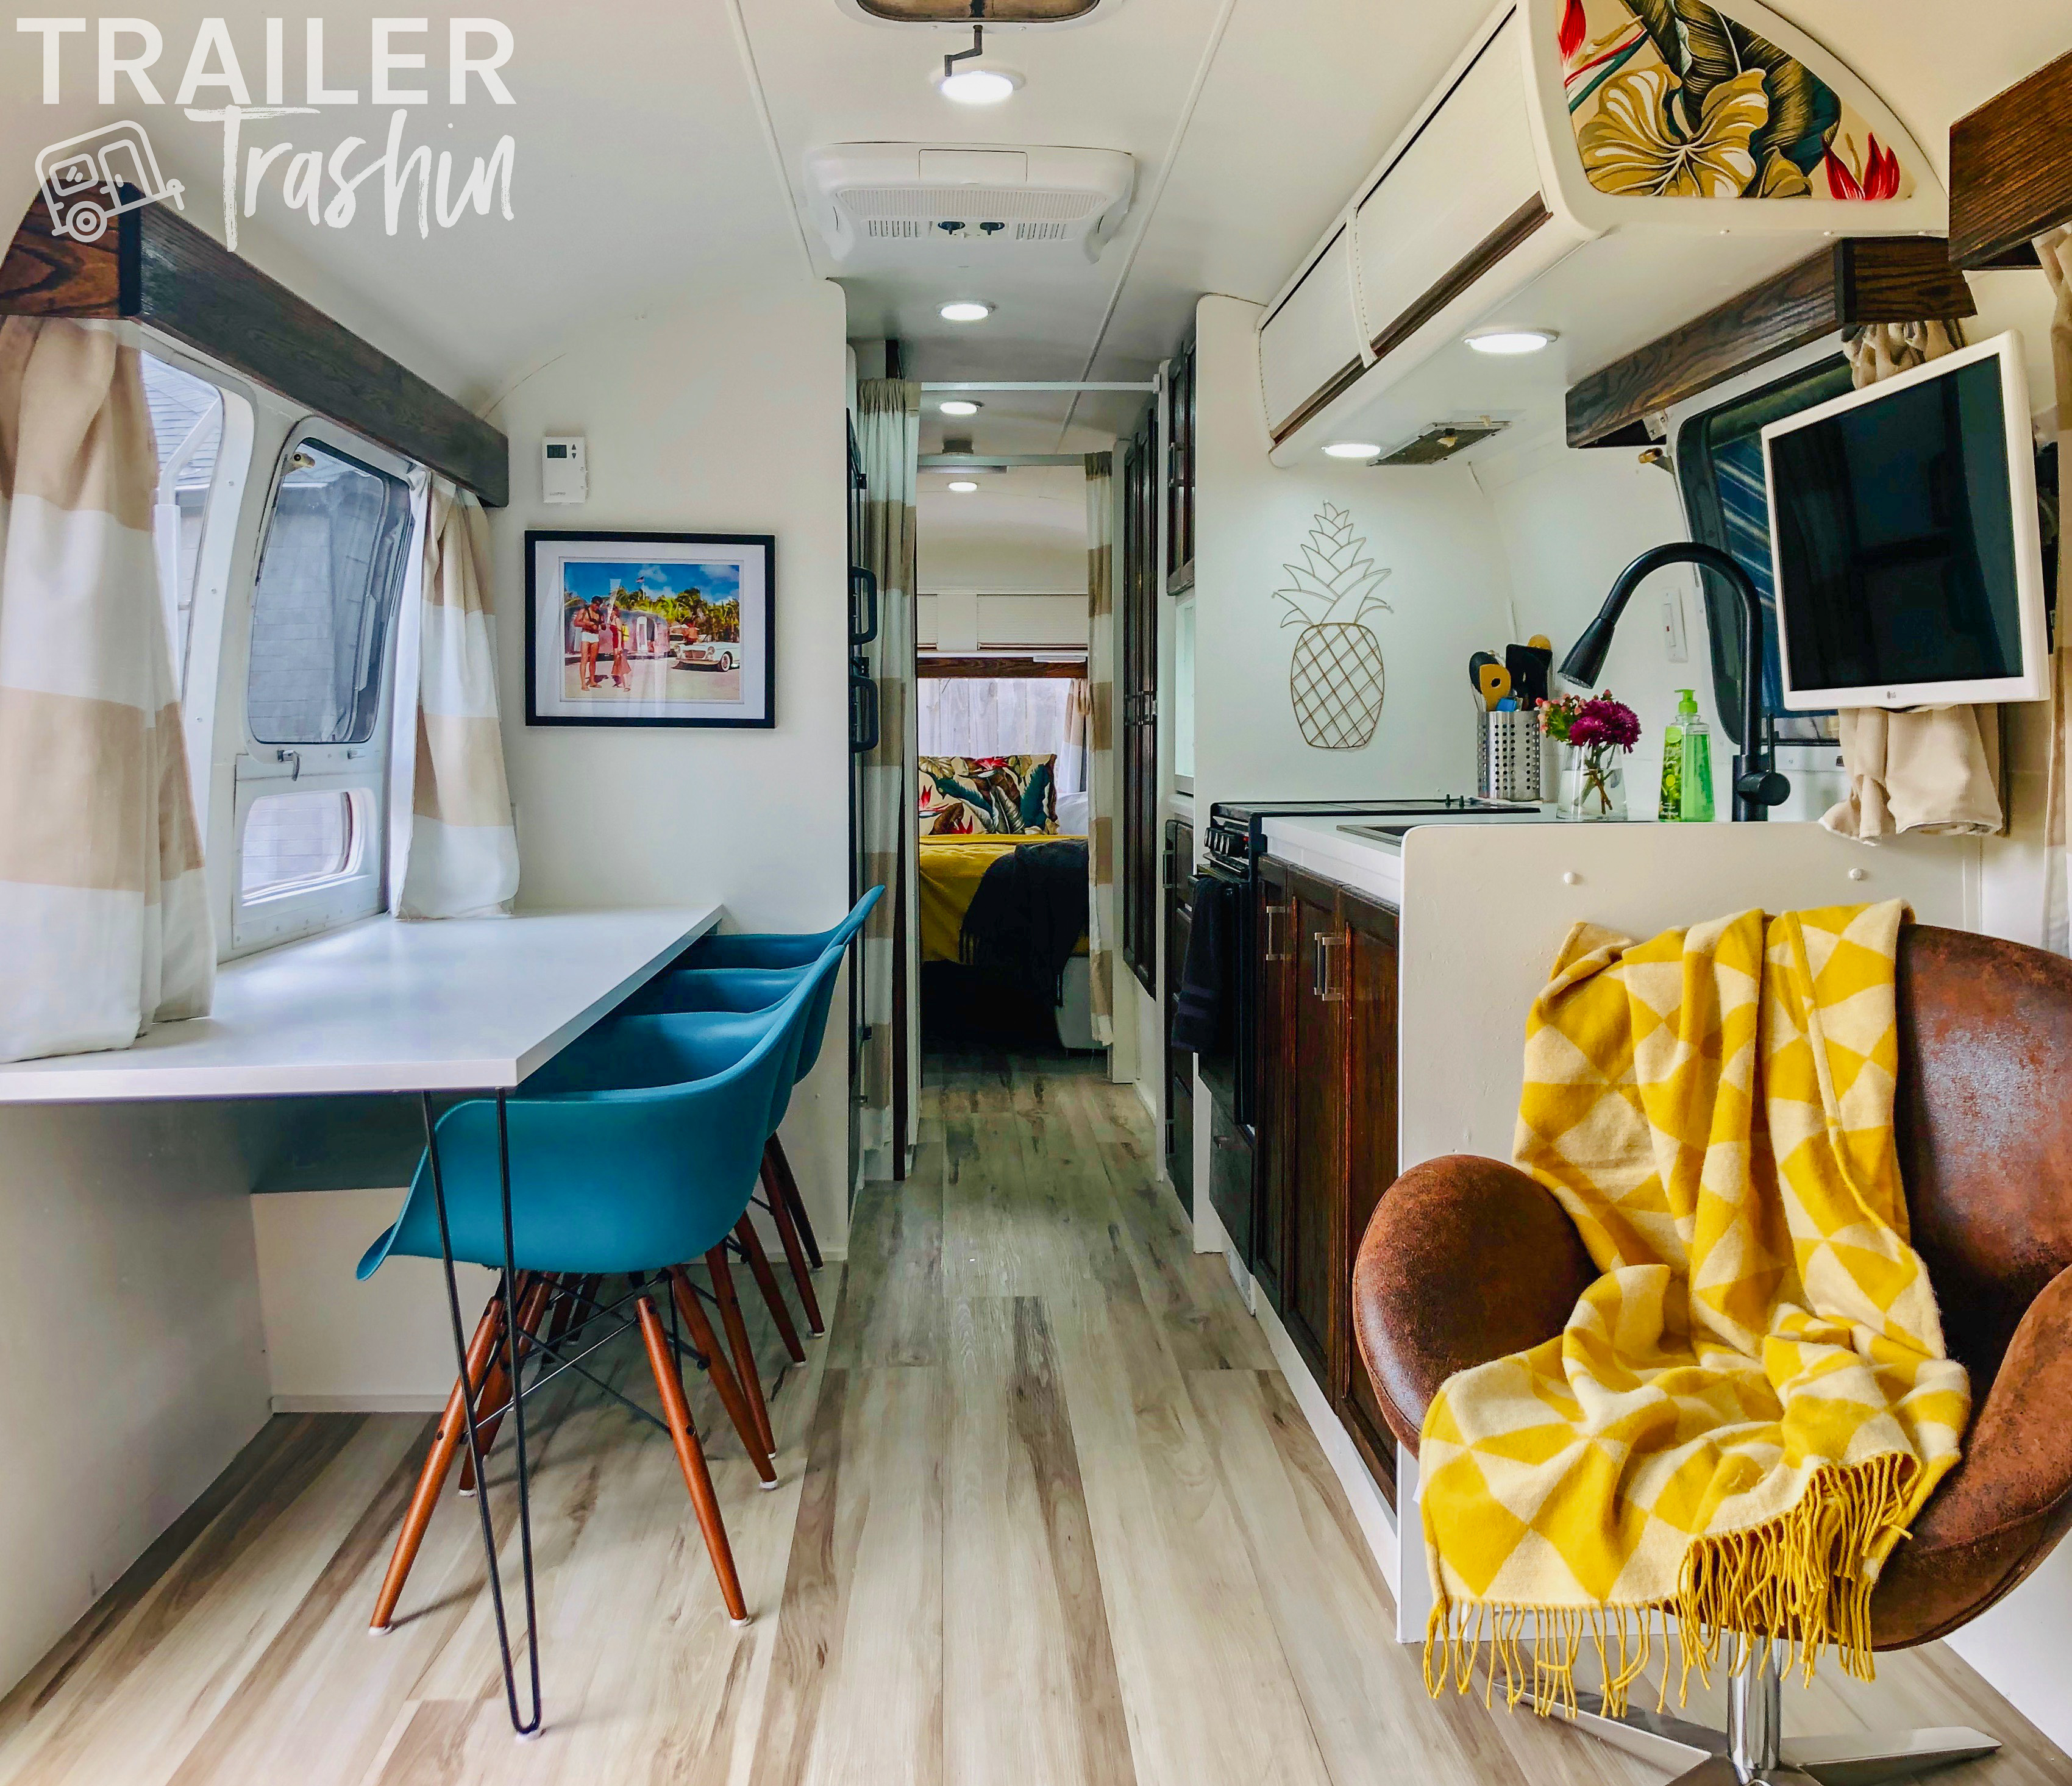 34' 1985 Airstream renovated for an awesome glamping experience. . Airstream Sovereign 1985